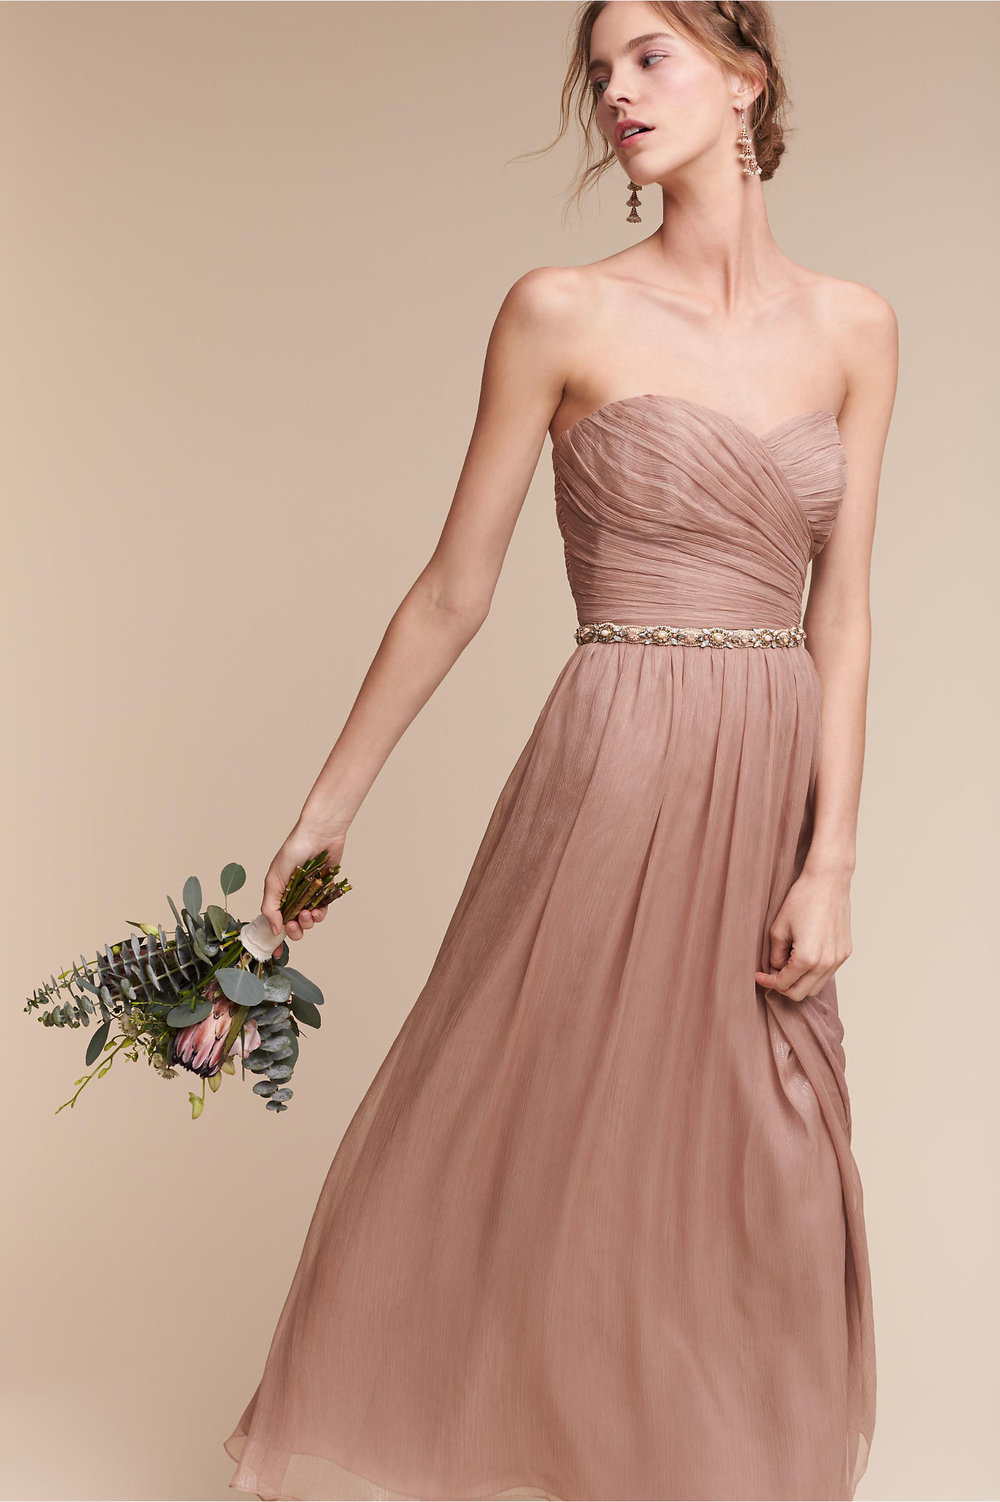 Della Dress - This dress is so flattering and romantic, and an absolute steal right now on BHLDN. Ruched bodices are always flattering, but the beauty of this strapless lies in its skirt; the midi-length allows for maximum movement while the shimmer fabric catches the light in the most beautiful way.Price: Retail $350, now just $120 (move fast on this one! limited sizes available).